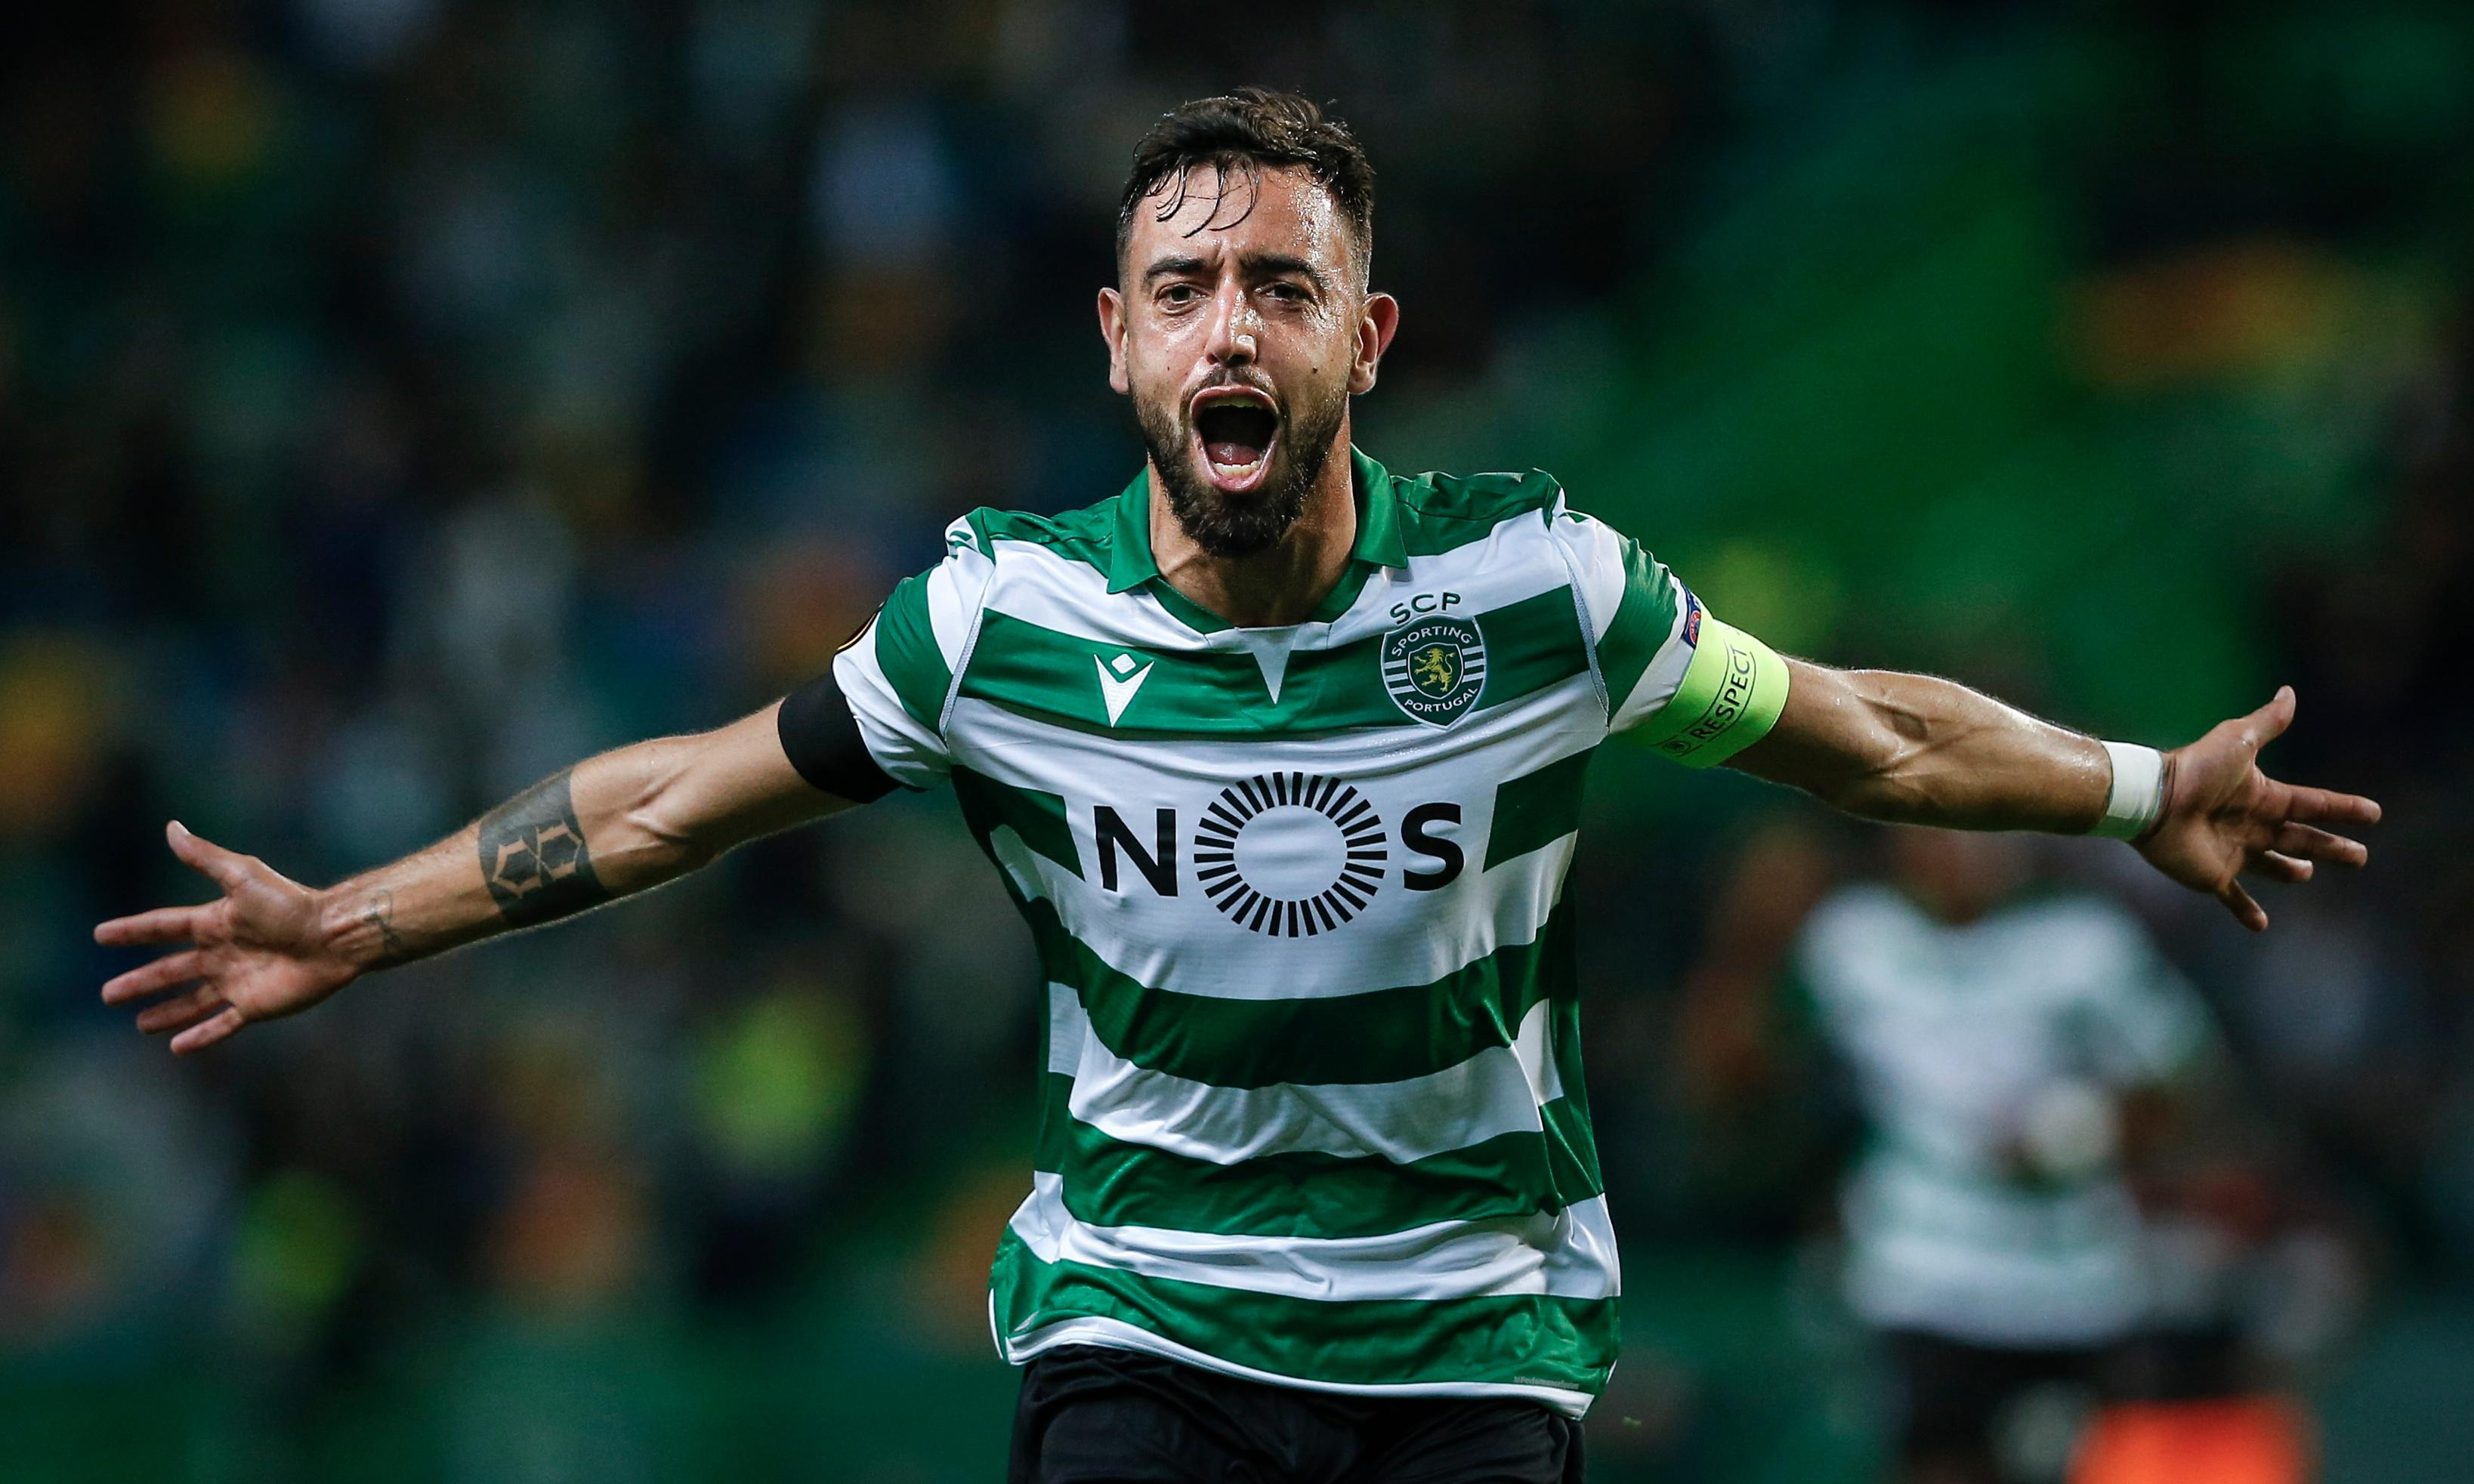 Bruno Fernandes set to join Manchester United for £46.5m plus add-ons